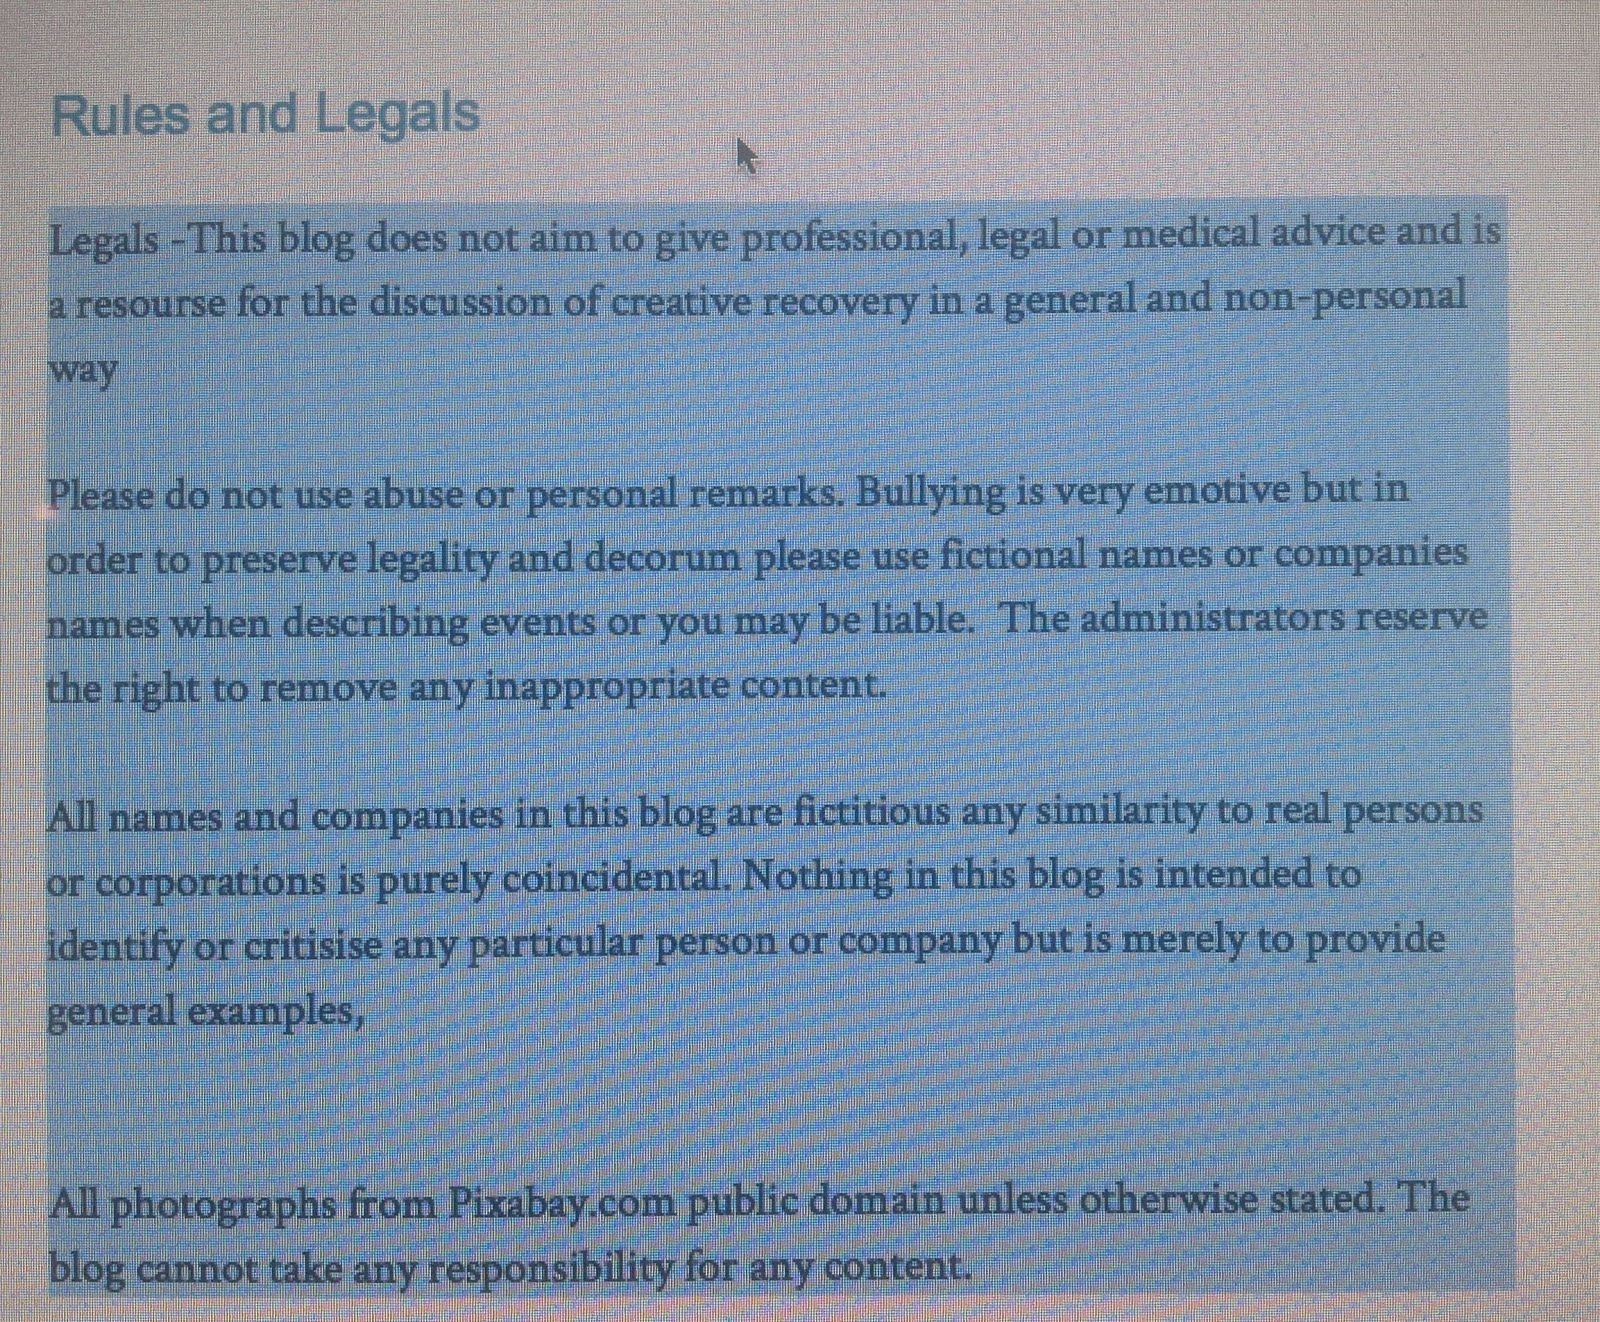 Rules and legals